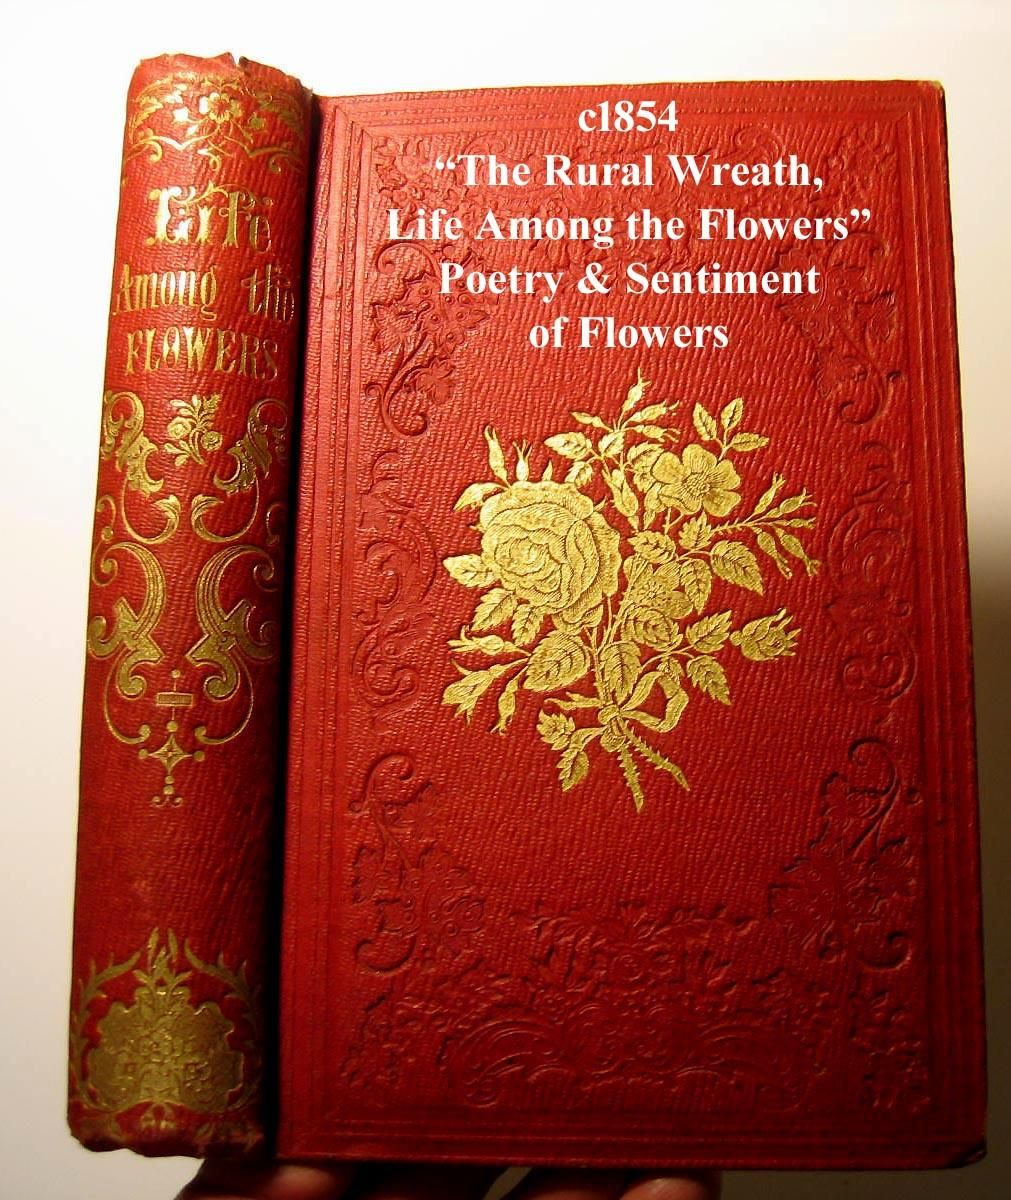 The rural wreath life among the flowers antique book poetry the rural wreath life among the flowers antique book poetry sentiment language symbolism of flowers victorian biocorpaavc Choice Image